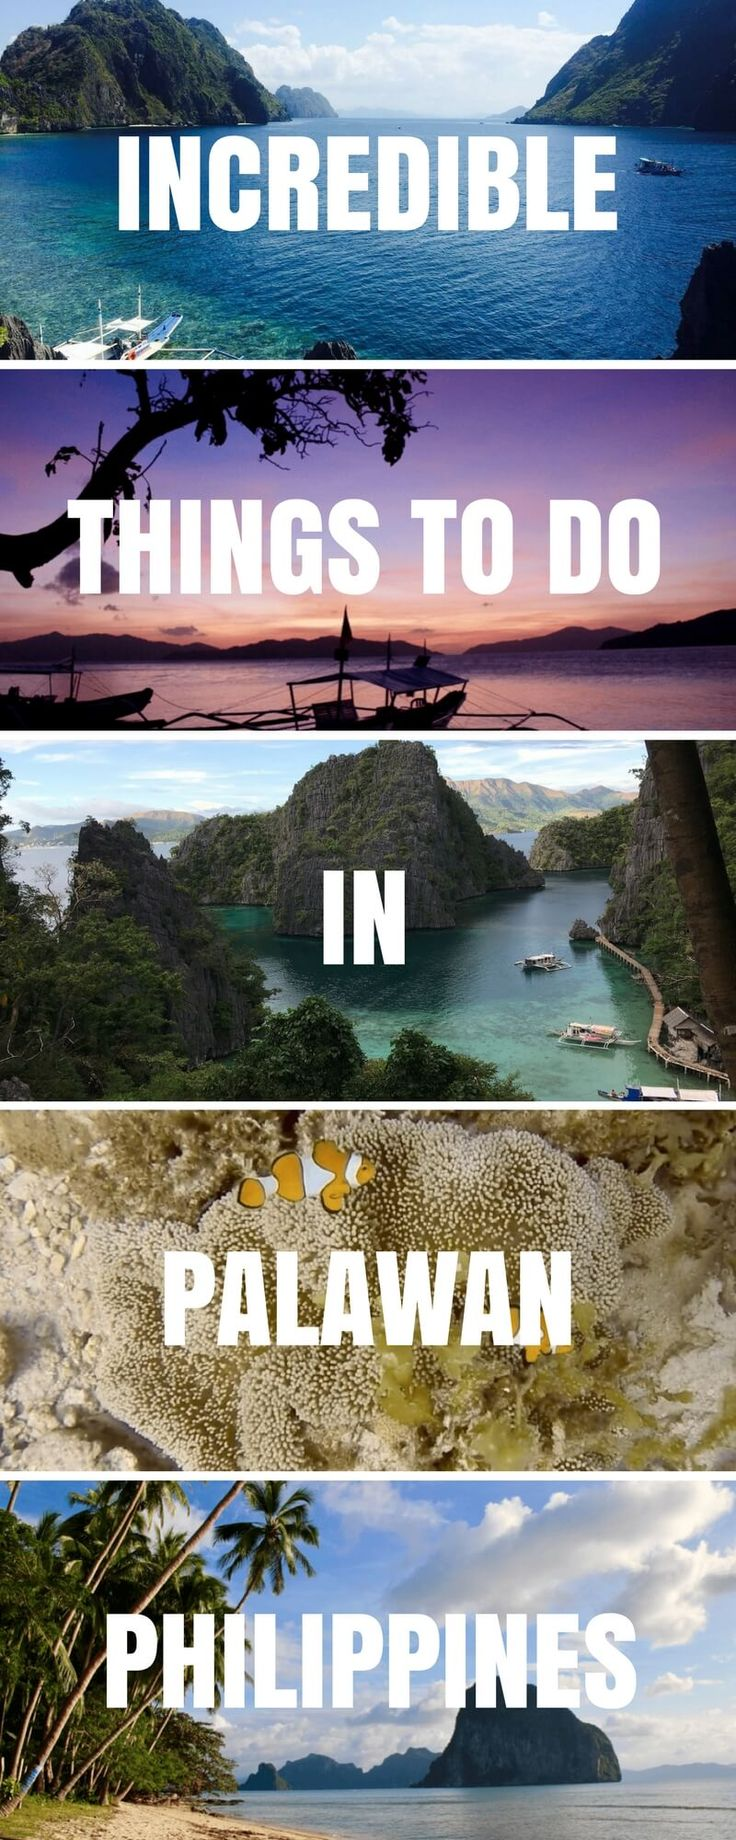 Visiting Palawan in the Philippines is an unforgettable experience. Click for Top Things To Do in Palawan + why you should make it your next stop! ***** Philippines | Palawan | El Nido | Coron | Things to do in Palawan | Things to do in El Nido | Things to do in Coron | Where to Stay in El Nido | Where to stay in Coron | Where to stay in Palawan | Puerto Princesa #Philippines #asiatraveltips #Palawan #ElNido #Coron